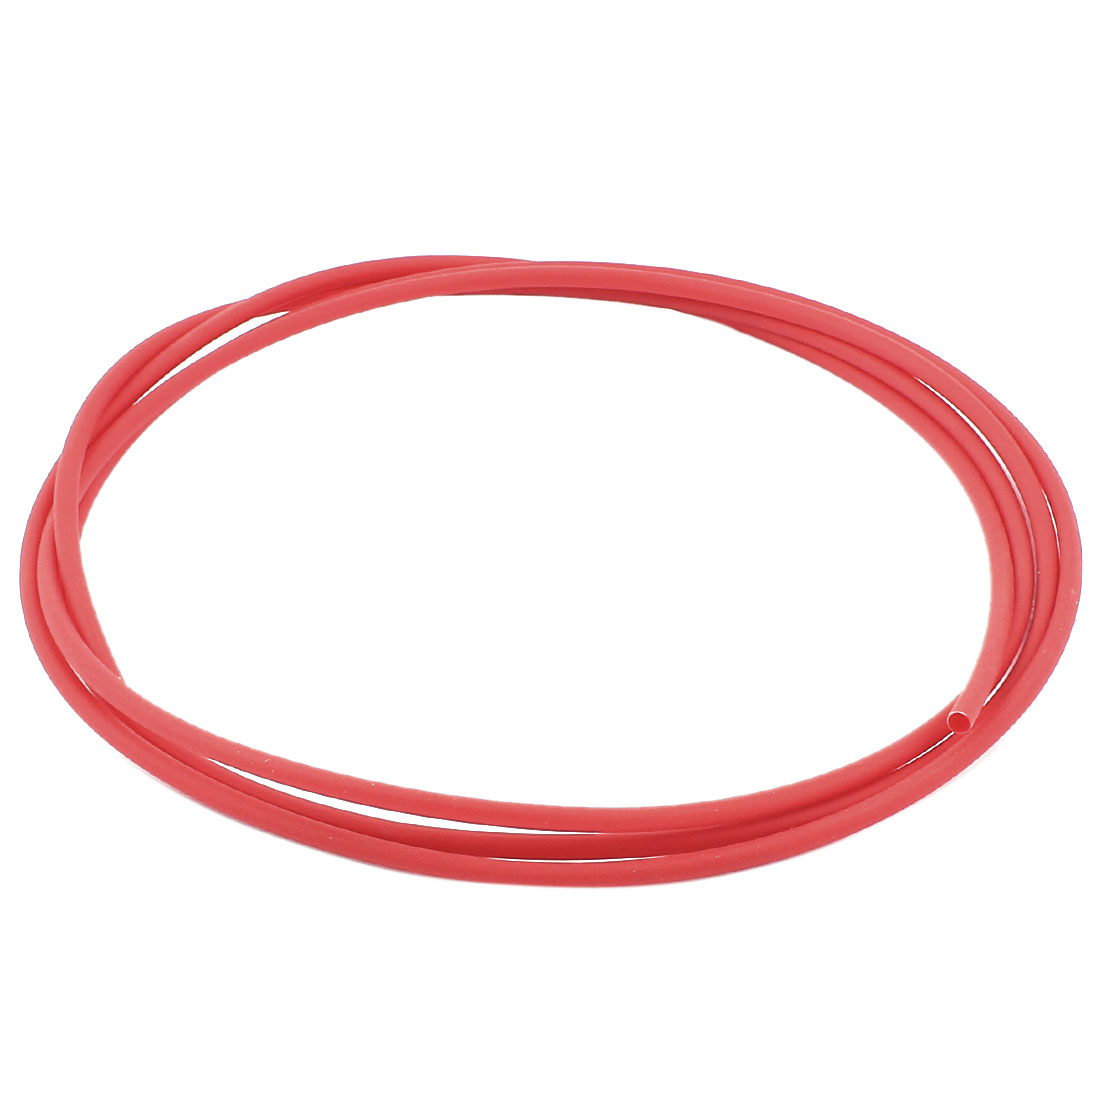 2.4mm Dual-Wall 3:1 Adhesive Lined Waterproof Heat Shrink Tubing 2M Red